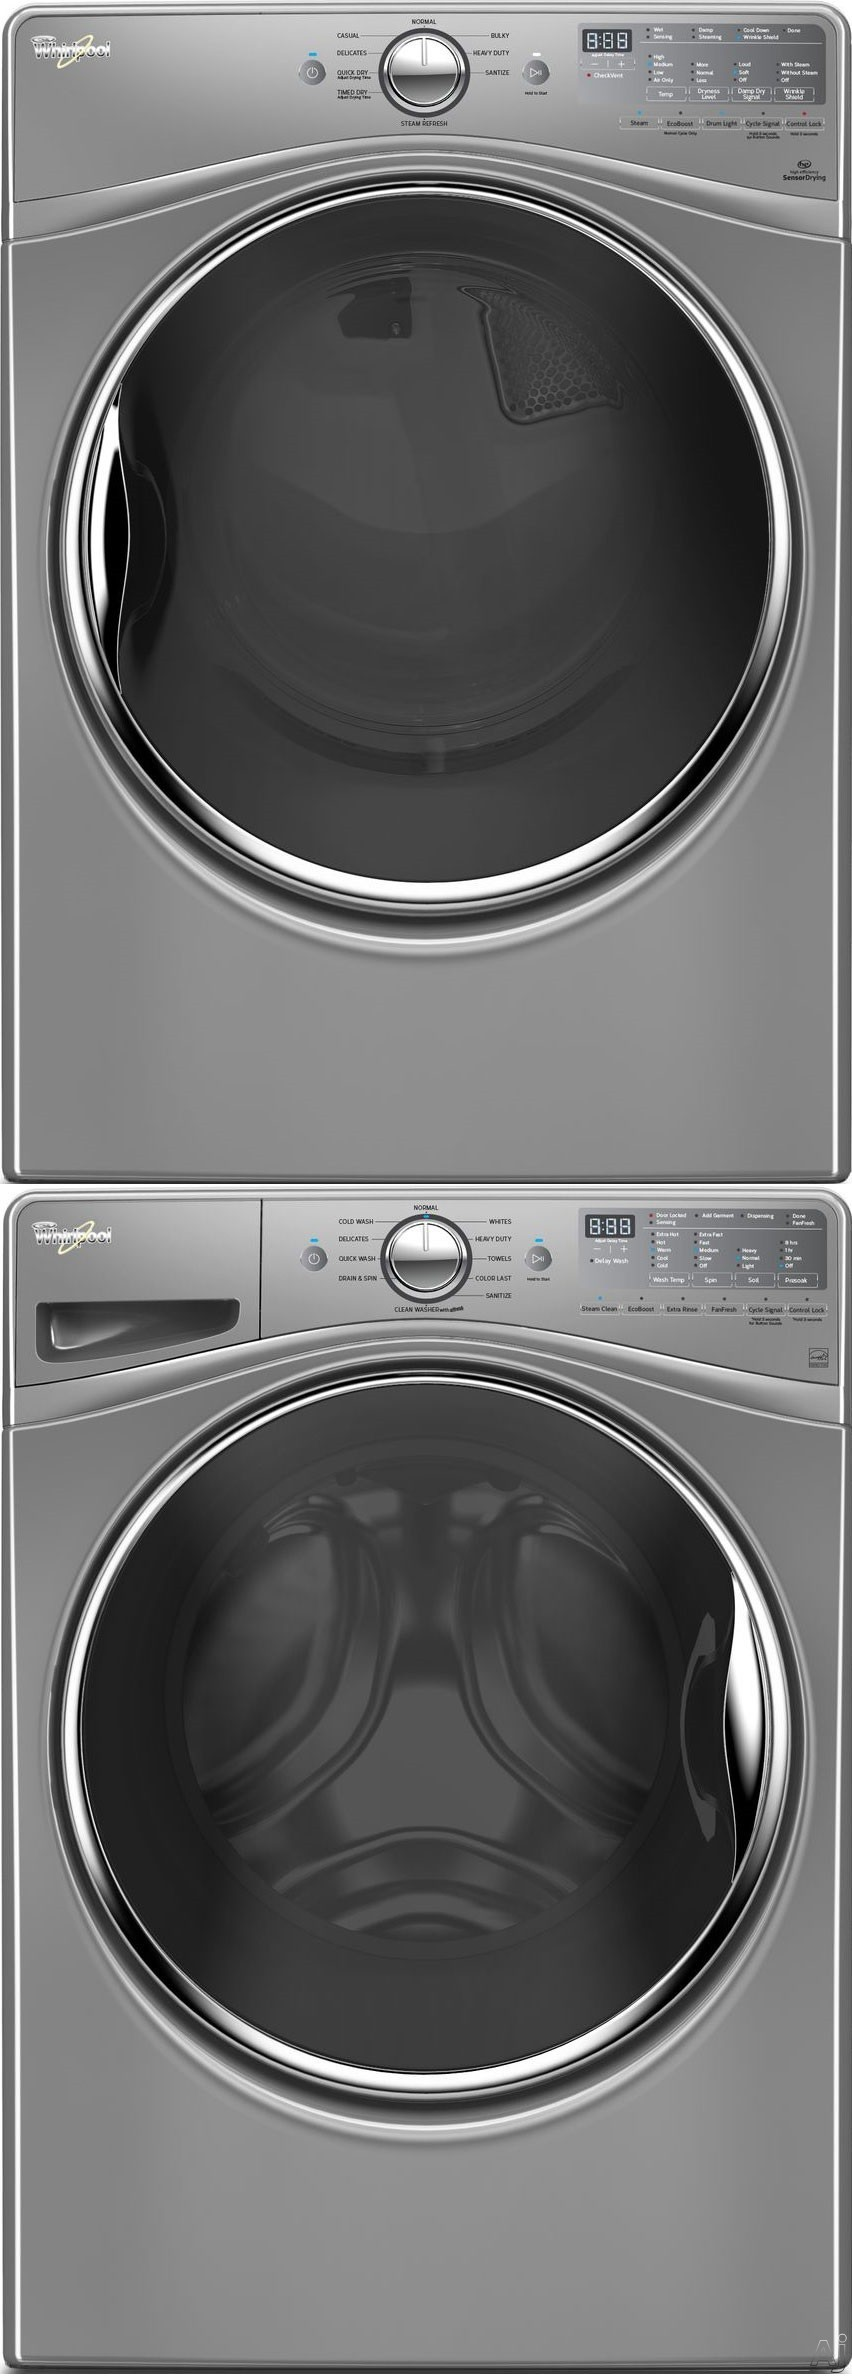 dryer electric white and laundry appliances load ft pedestal washer brick cu whirlpool pairs package product front duet the